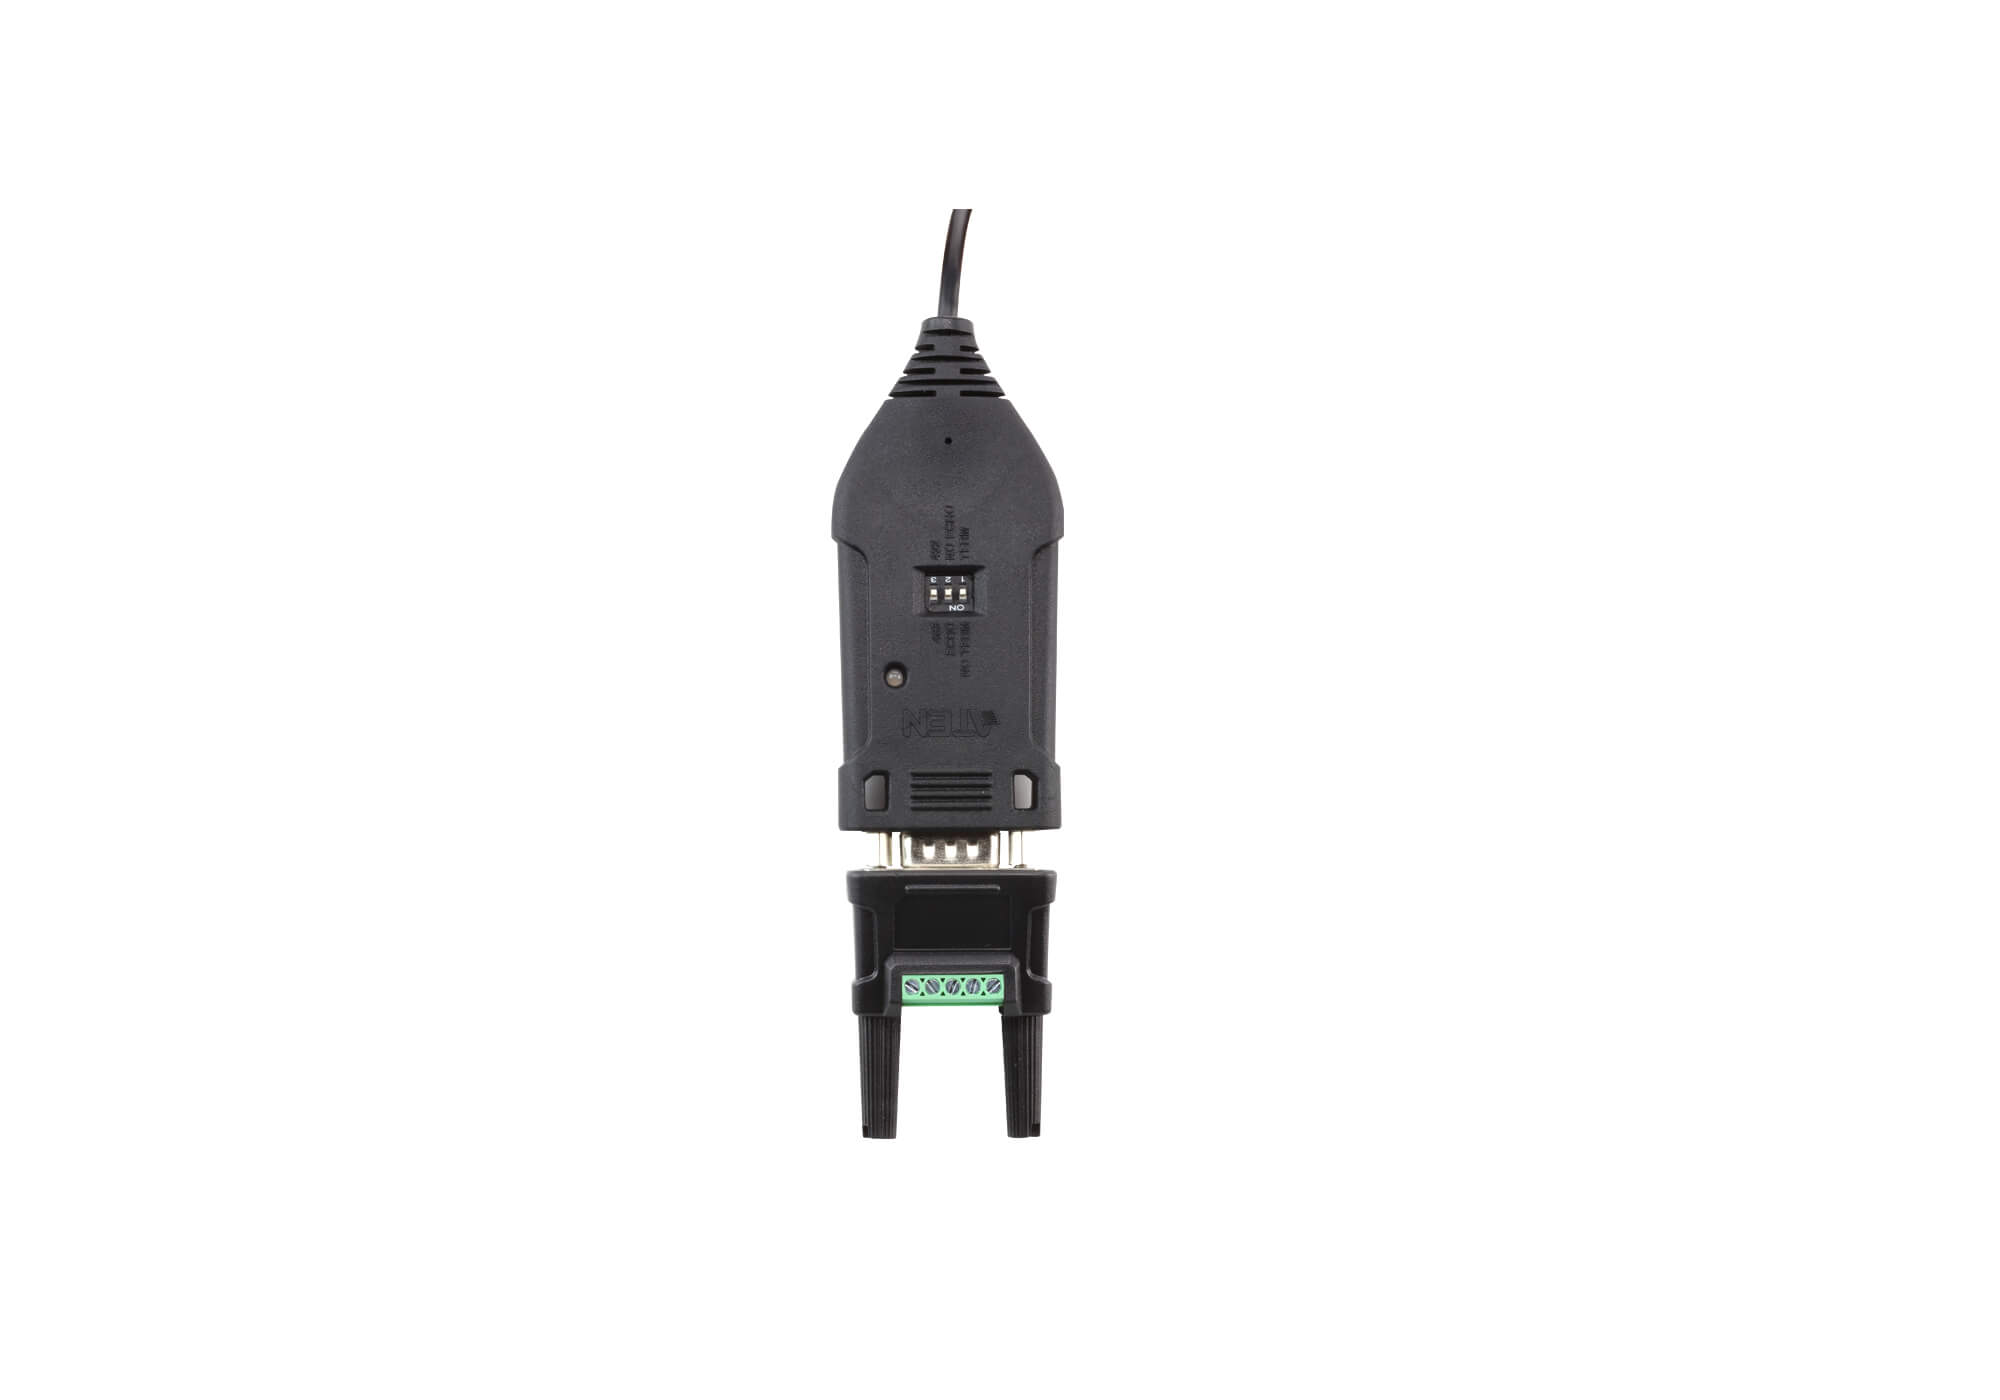 Adaptador de USB a RS-422/485-4